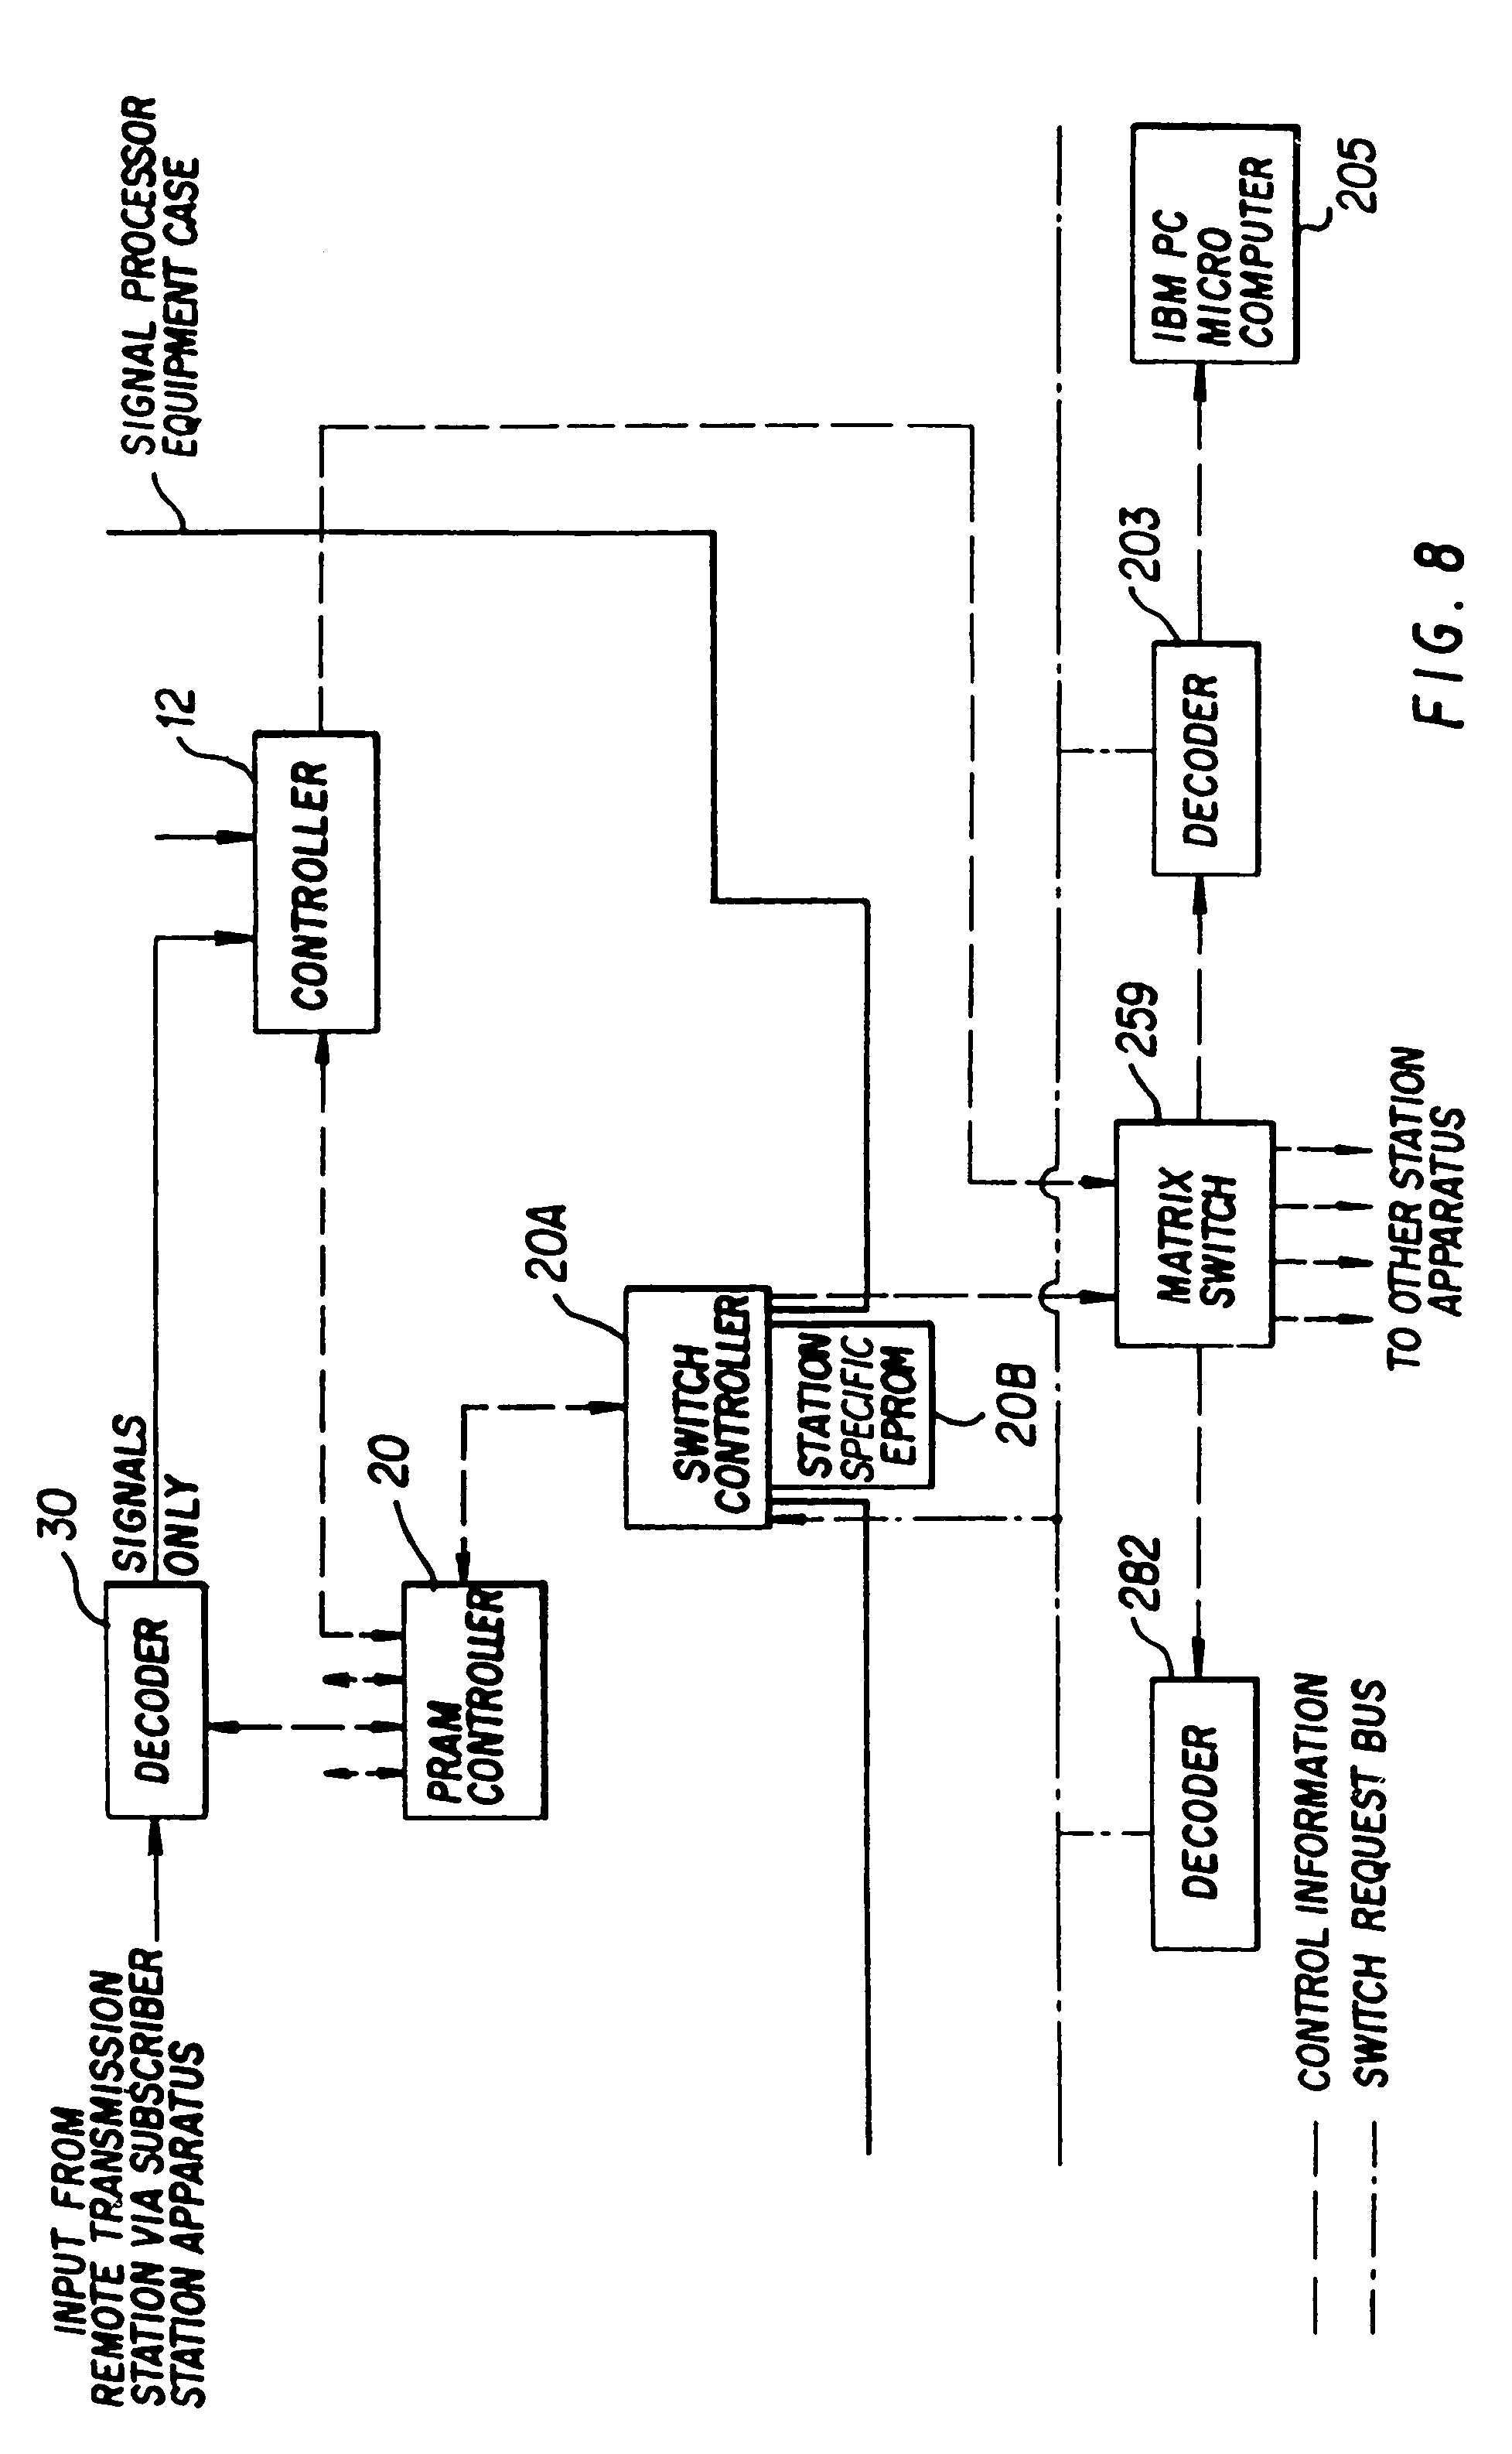 Us7793332b1 Signal Processing Apparatus And Methods Google Patents Lincoln Sam 400 Wiring Diagram